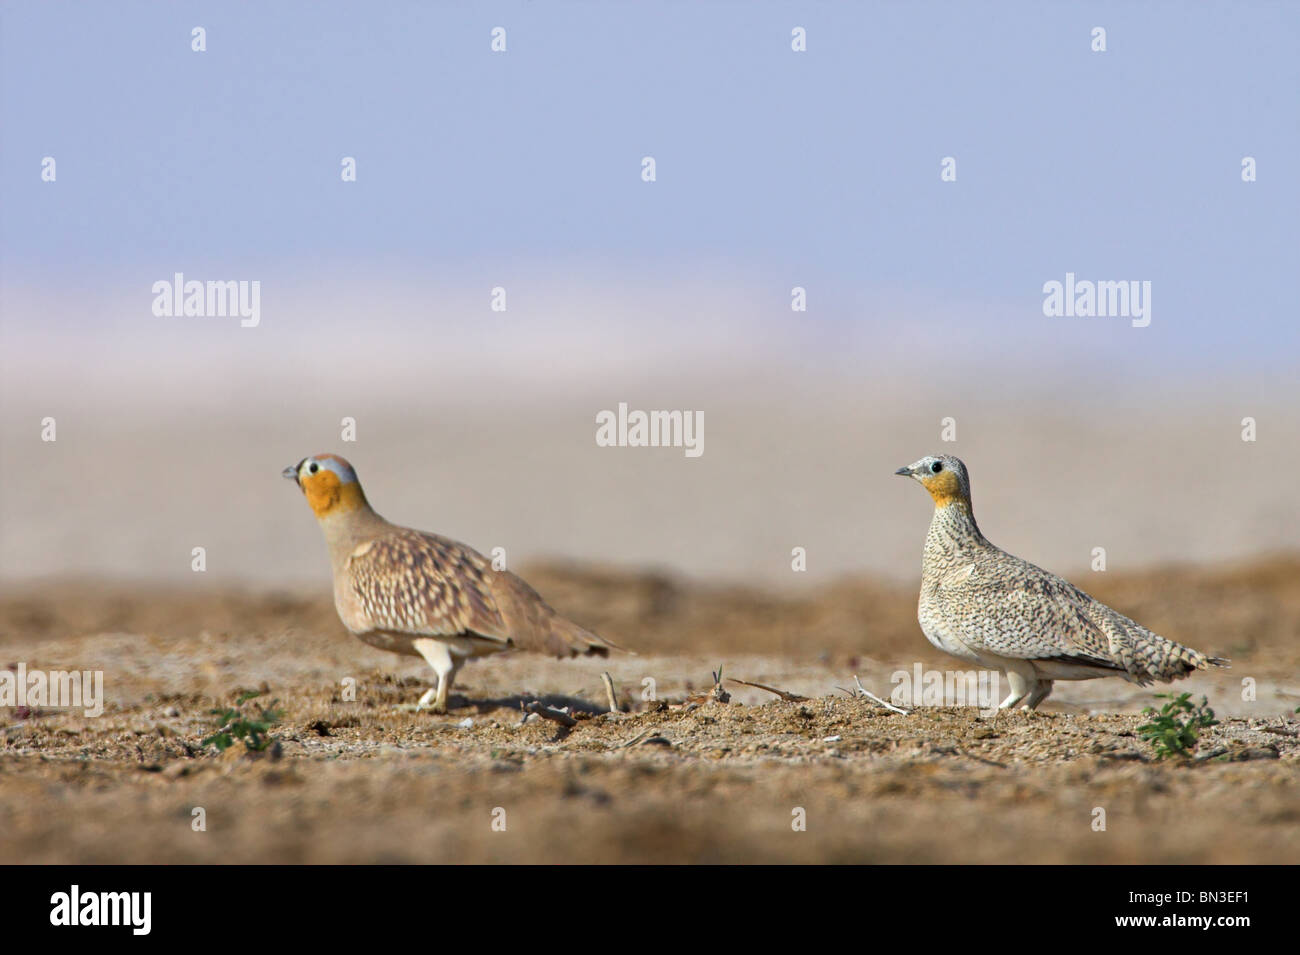 Two Crowned Sandgrouses (Pterocles coronatus), side view Stock Photo